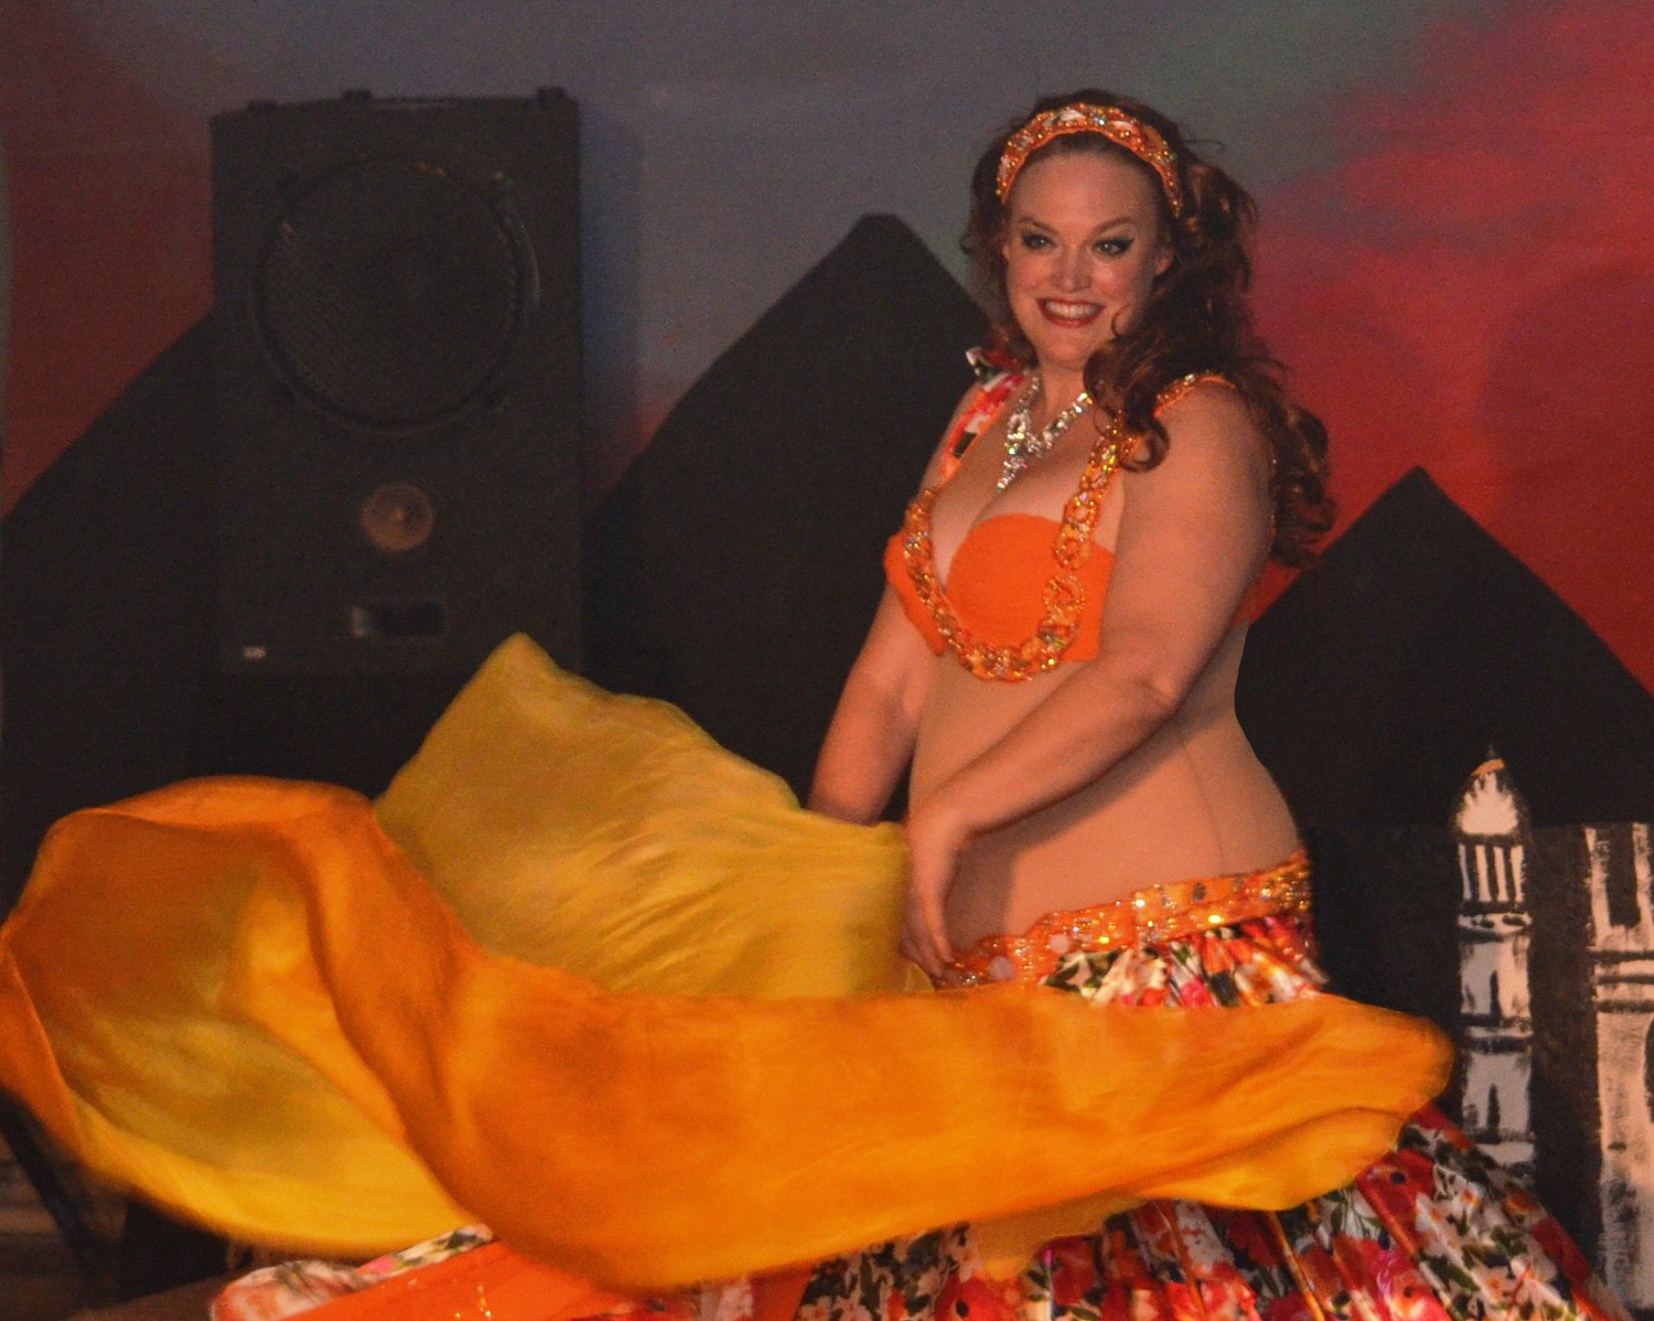 Khalisah at Gypsy Mystique 2015